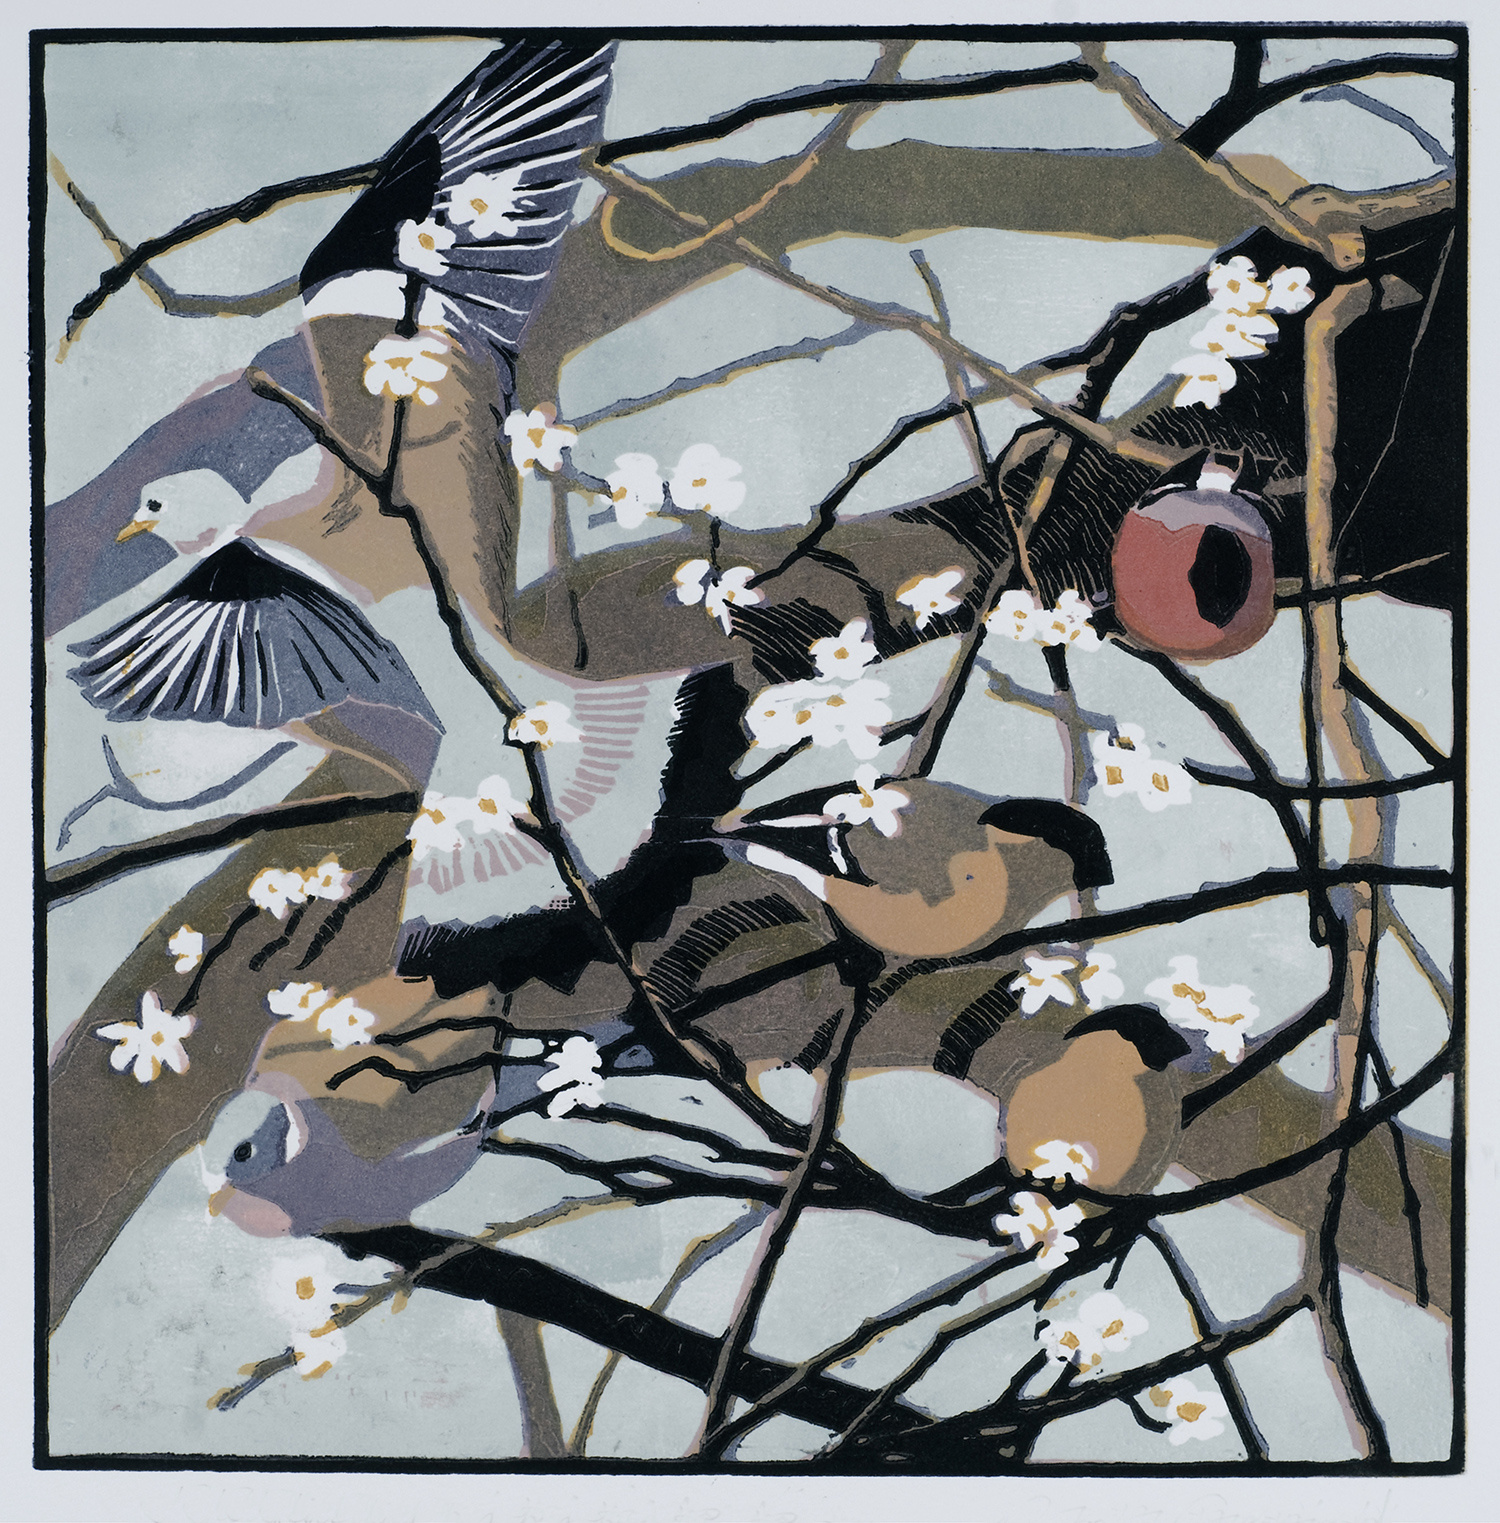 Bullfinches & Woodpigeons by Robert Greenhalf